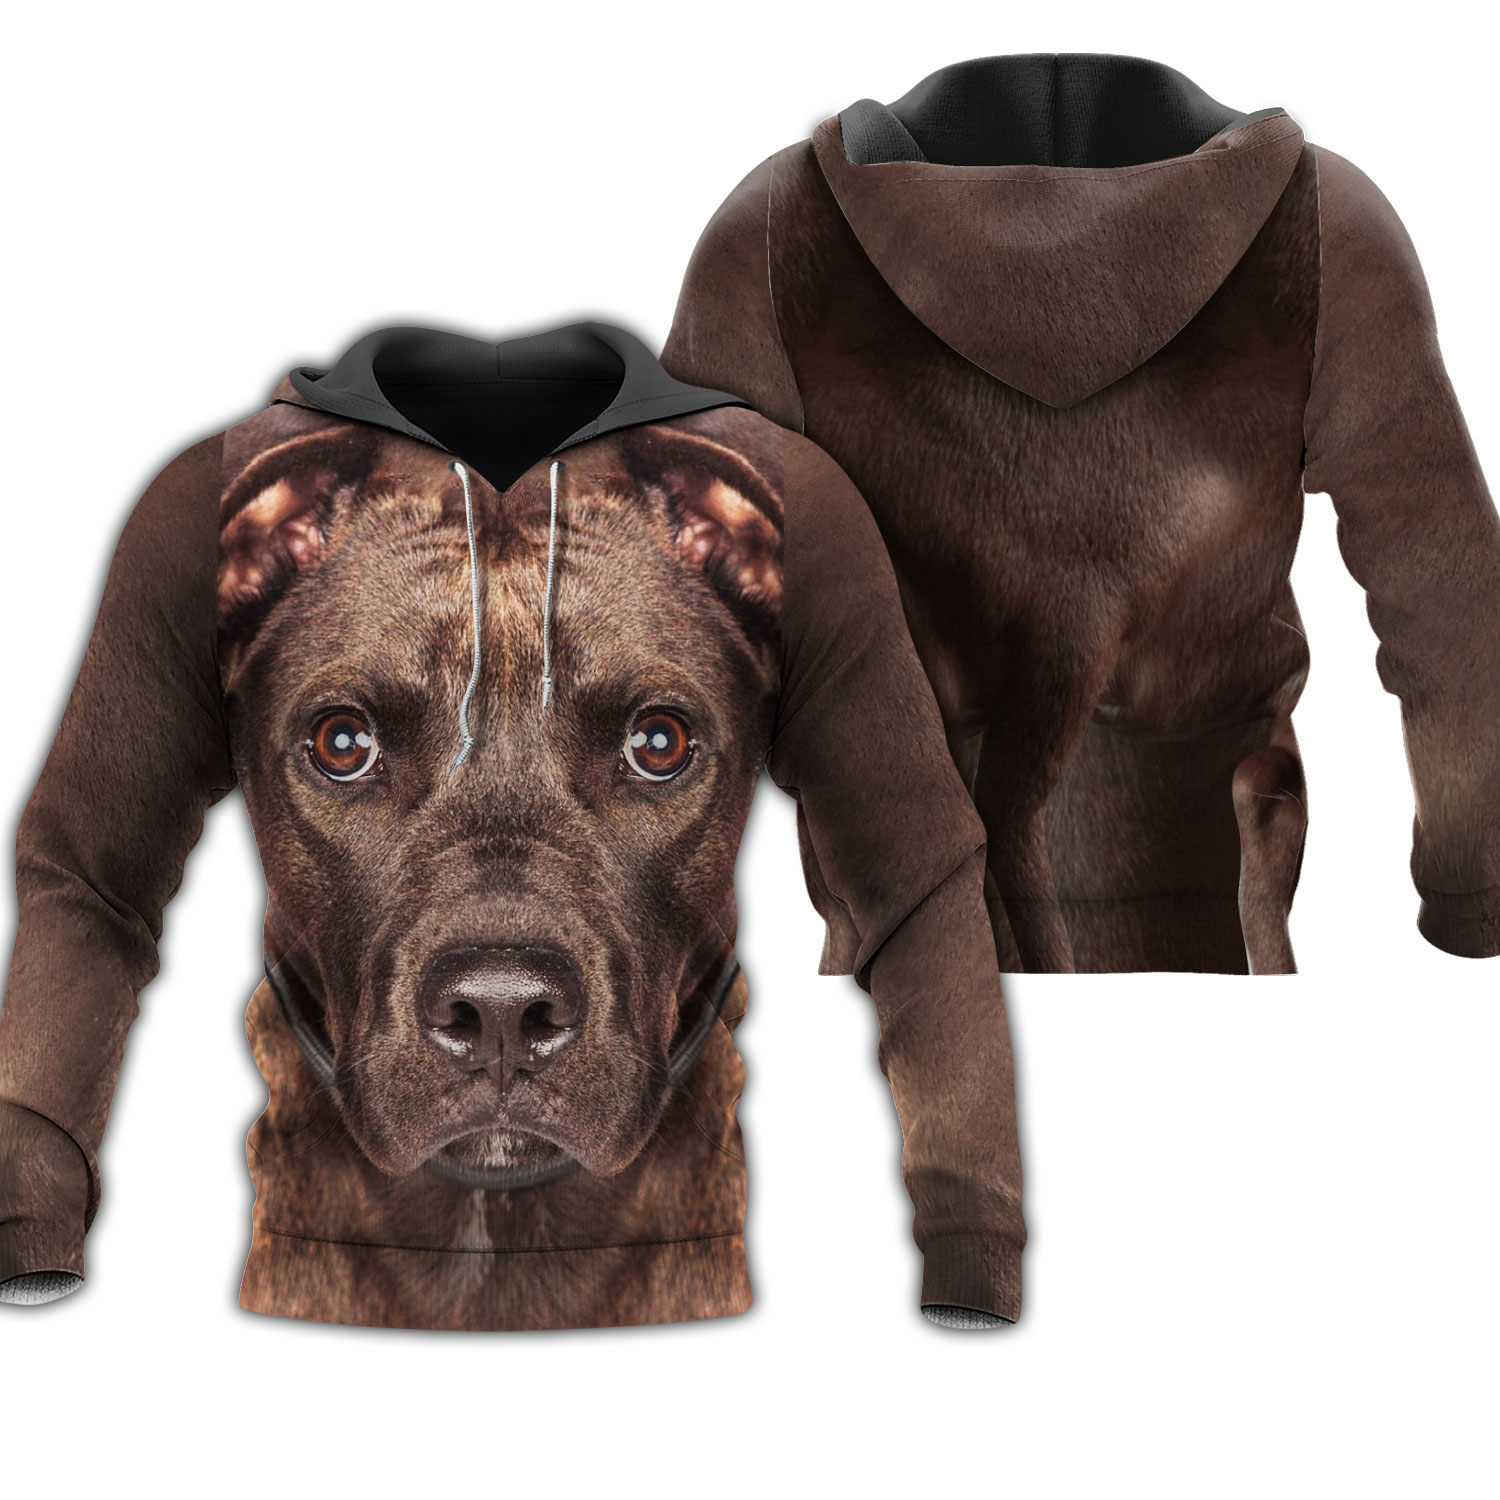 Love Dog 3D All Over Printed Shirts